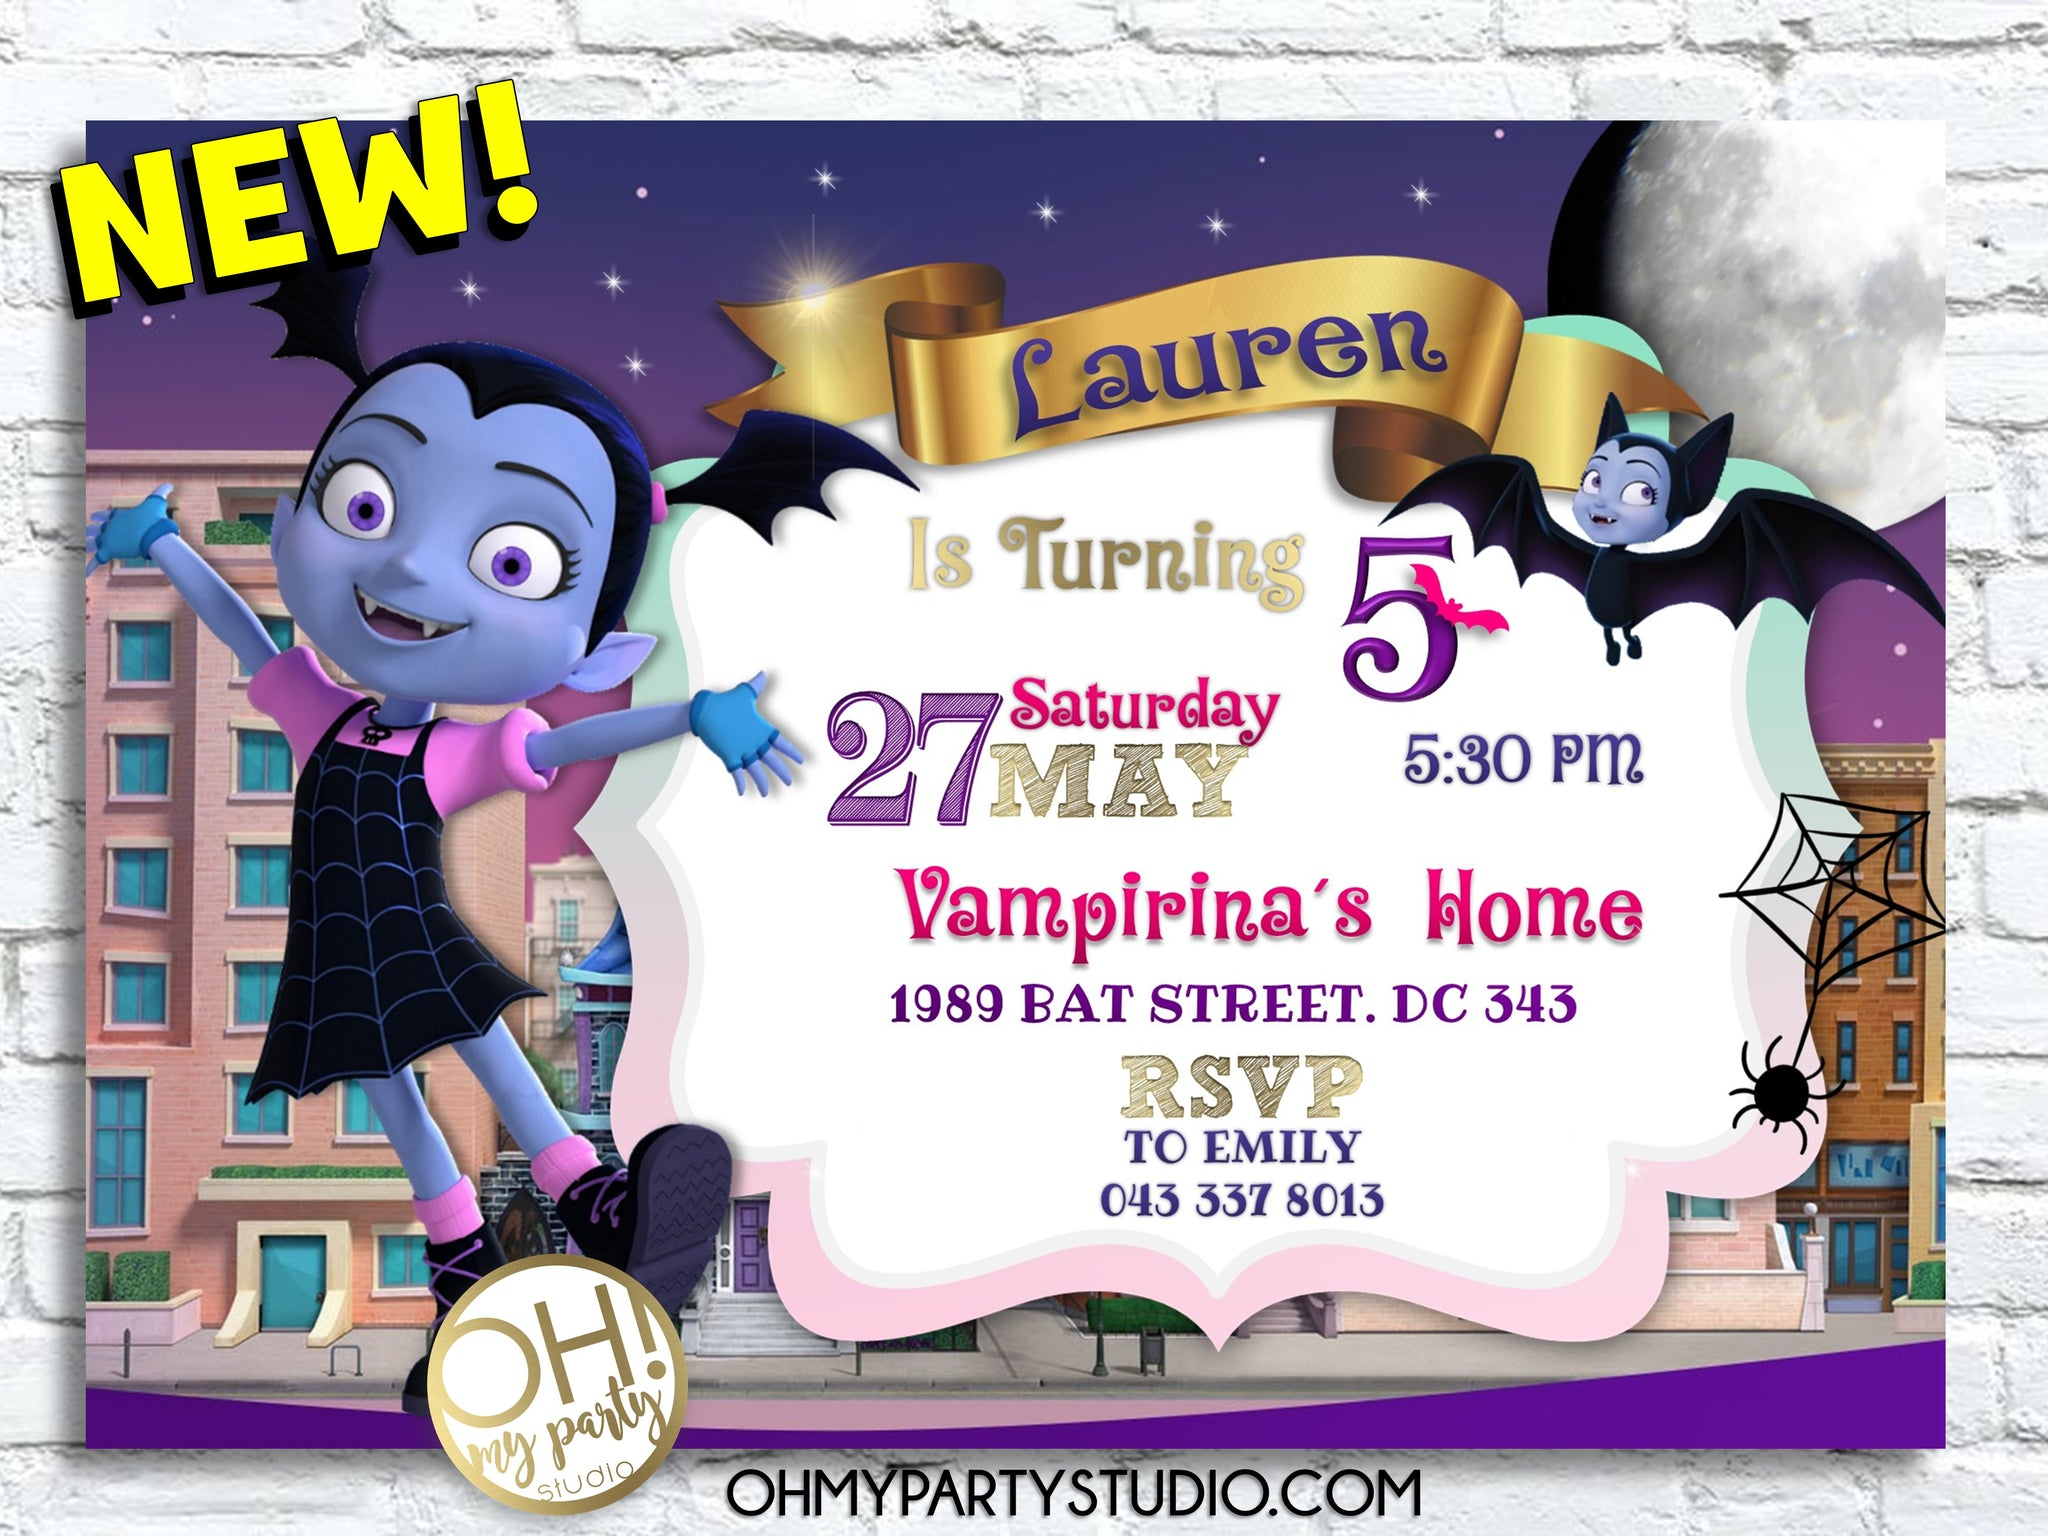 VAMPIRINA BIRTHDAY PARTY, VAMPIRINA BIRTHDAY INVITATION, VAMPIRINA INVITATIONS, VAMPIRINA INVITATION, VAMPIRINA PARTY IDEAS, VAMPIRINA DIGITAL INVITATION, VAMPIRINA PARTY, VAMPIRINA BIRTHDAY, VAMPIRINA DECORATION, VAMPIRINA PARTY PRINTABLES, VAMPIRINA INVITATIONS, VAMPIRINA BIRTHDAY PARTY DECORATIONS, VAMPIRINA CAKE, VAMPIRINA PARTY DECORATIONS